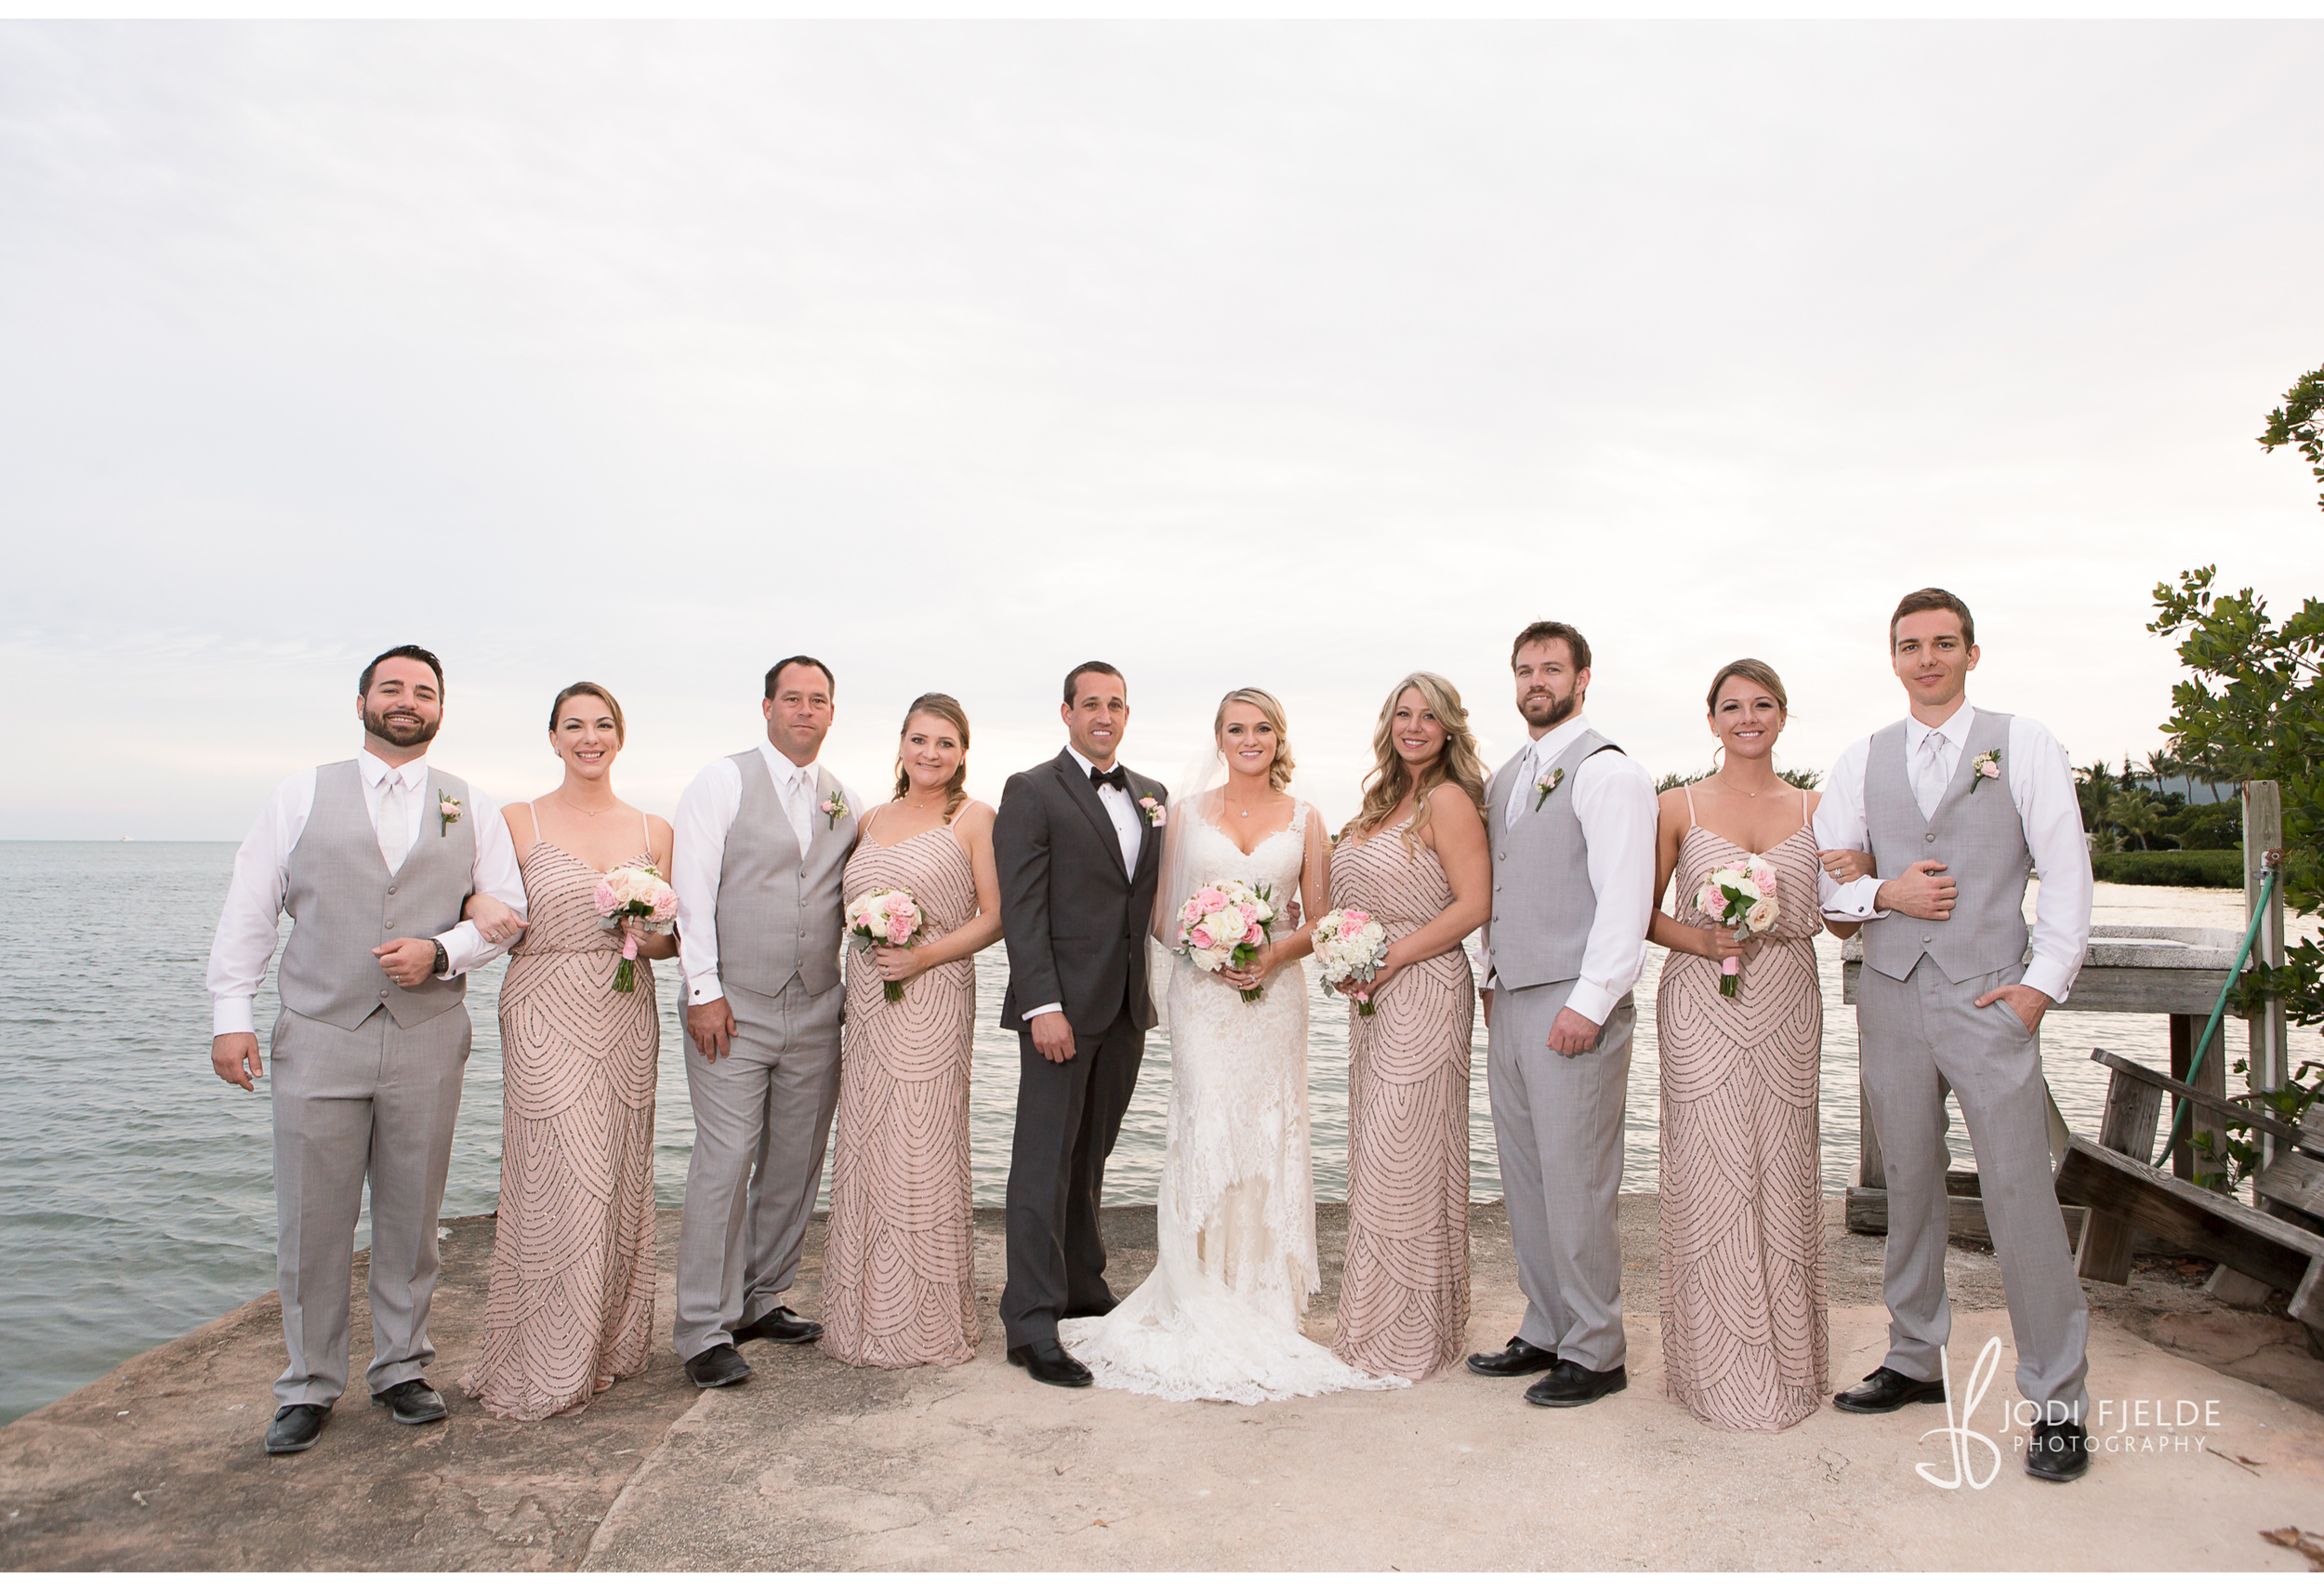 Cocconut_Cove_&_ Marina_ wedding_Kalie_and_Kurt 36.jpg